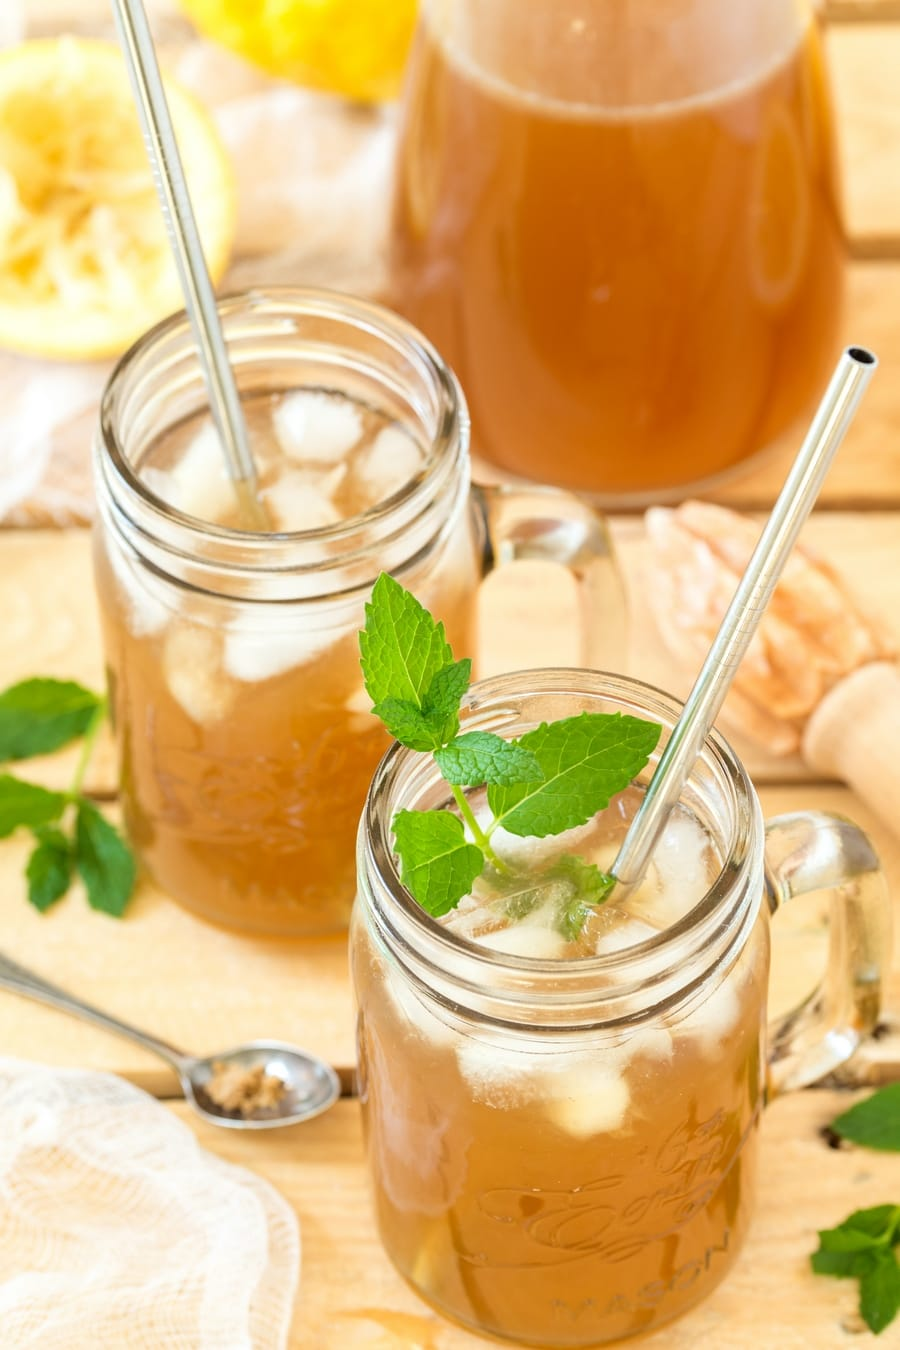 Brown sugar lemonade with a fresh mint sprig in the glass.